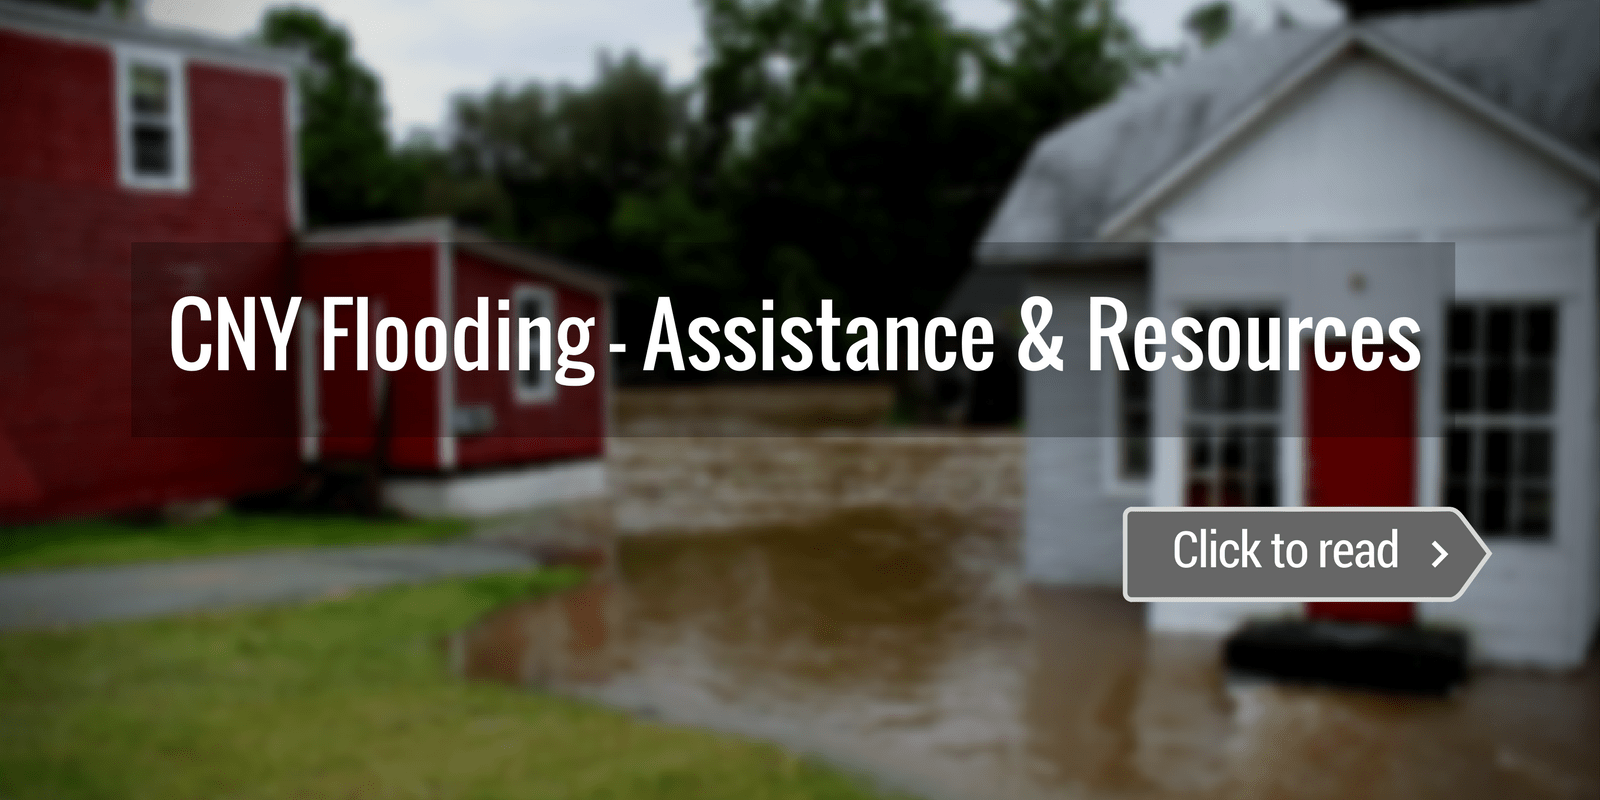 CNY Flooding Assistance and Resources